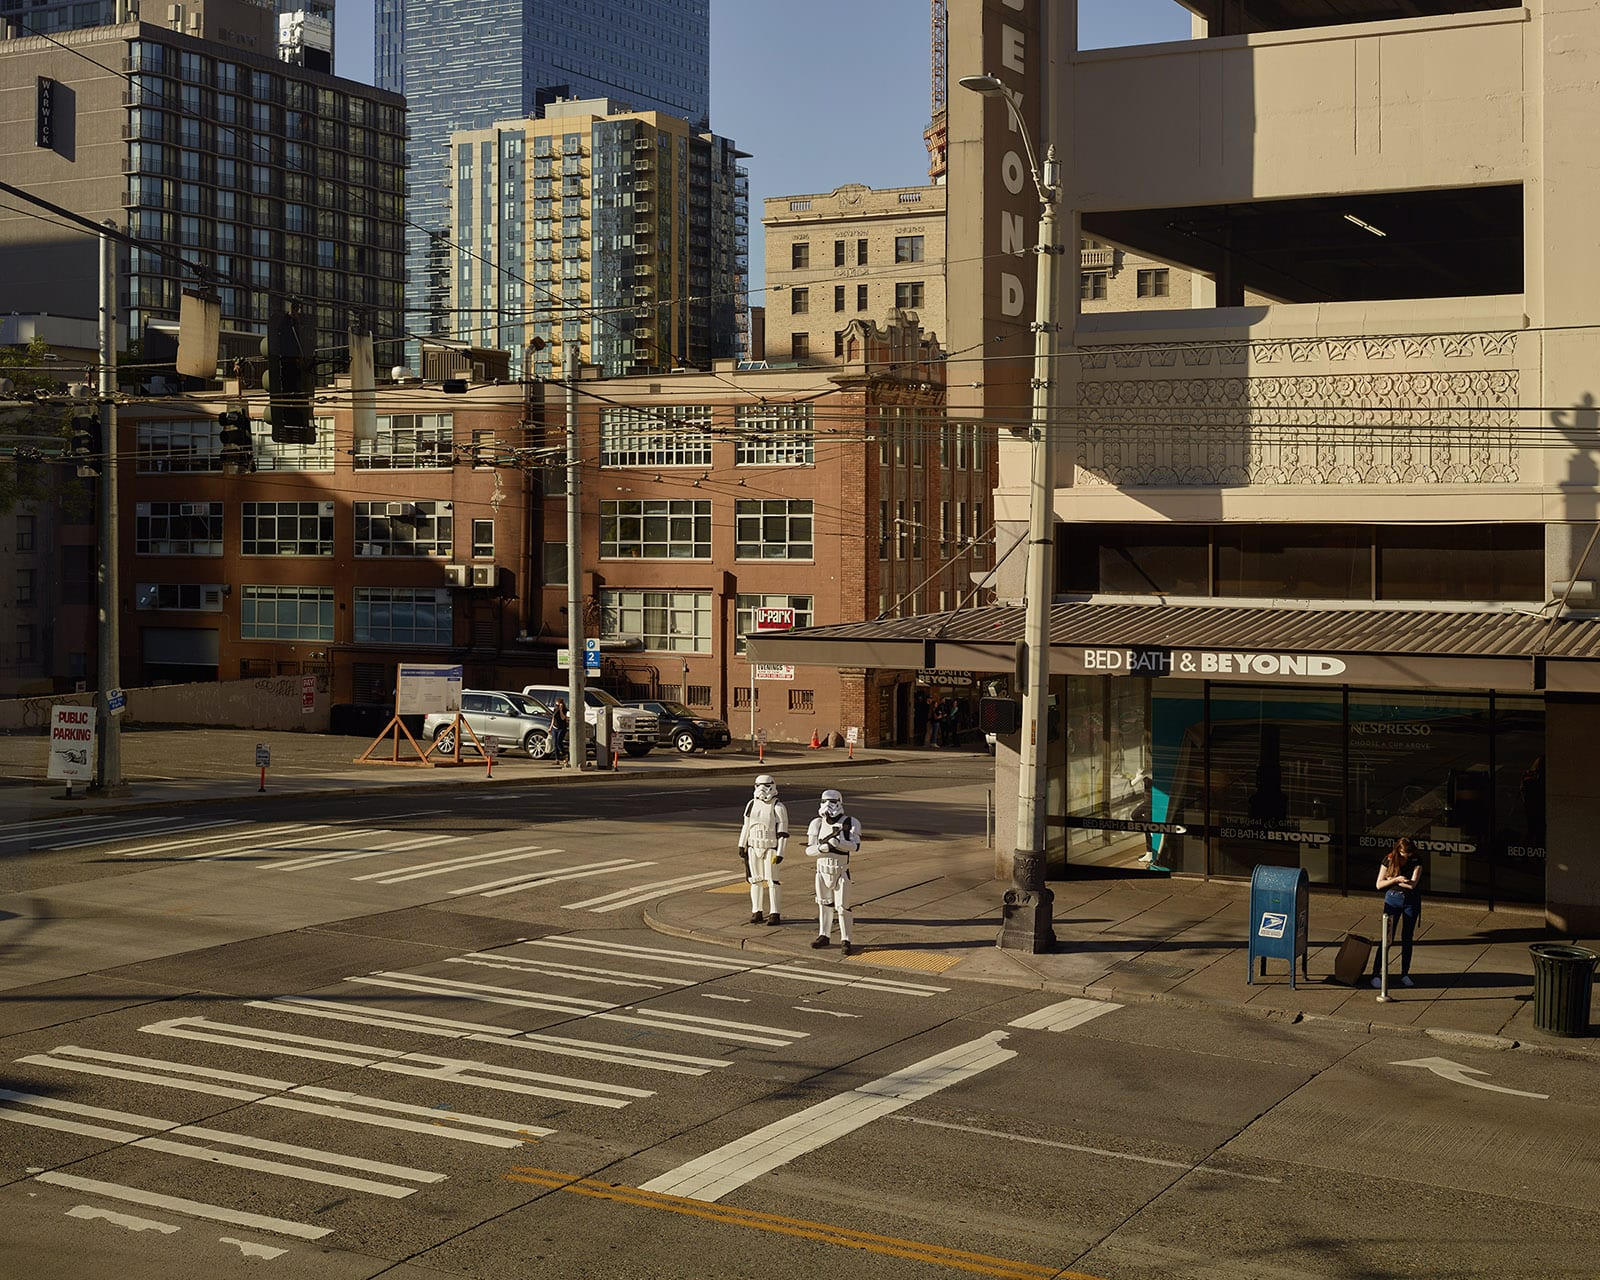 Virginia St, Seattle. Oli Kellett - HackelBury Fine Art London - photograph of two stormtroopers waiting at crosswalk under bed bath and beyond sign